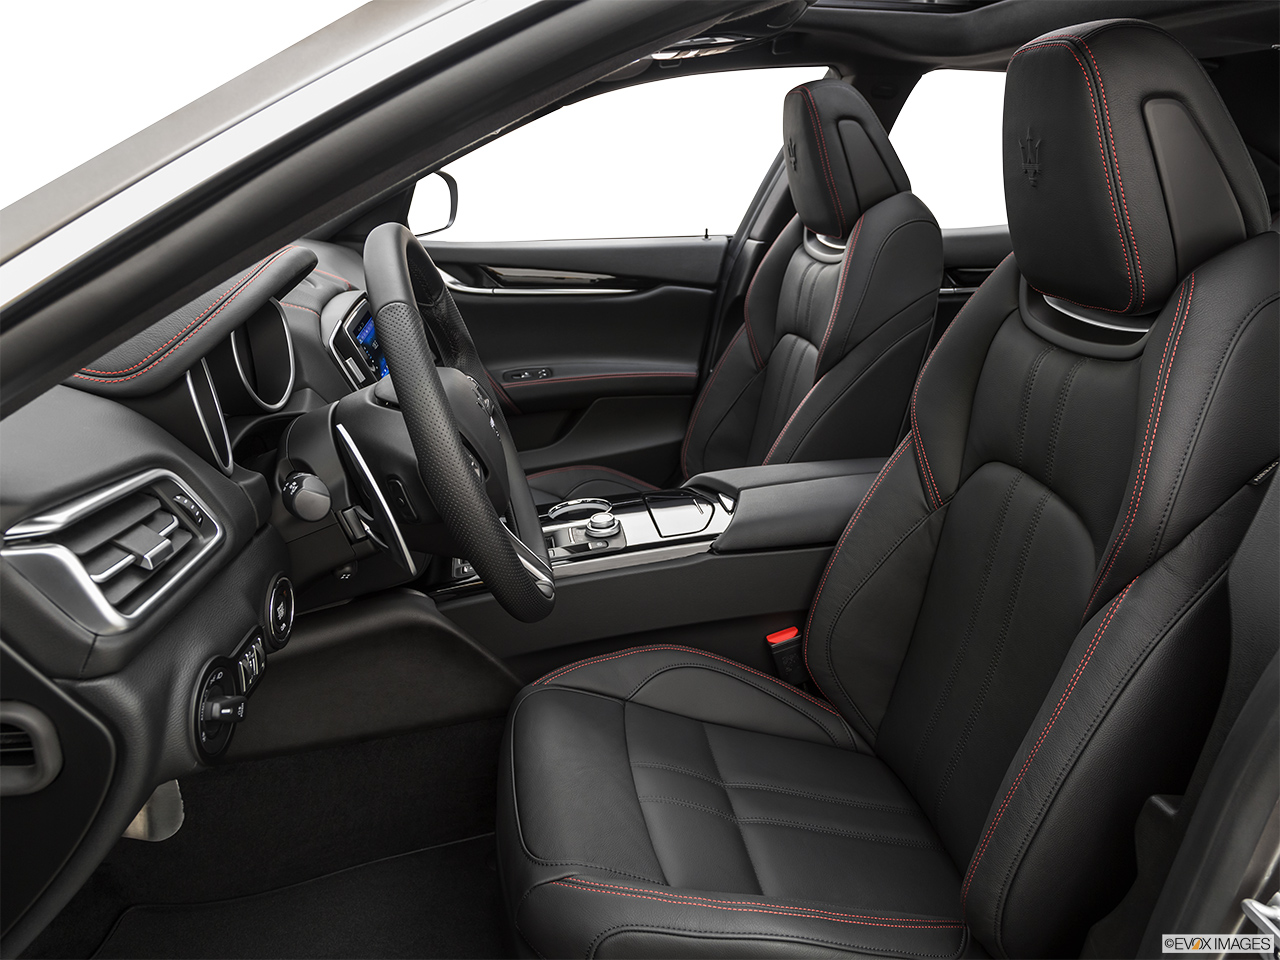 2020 Maserati Ghibli S Gransport Front seats from Drivers Side.